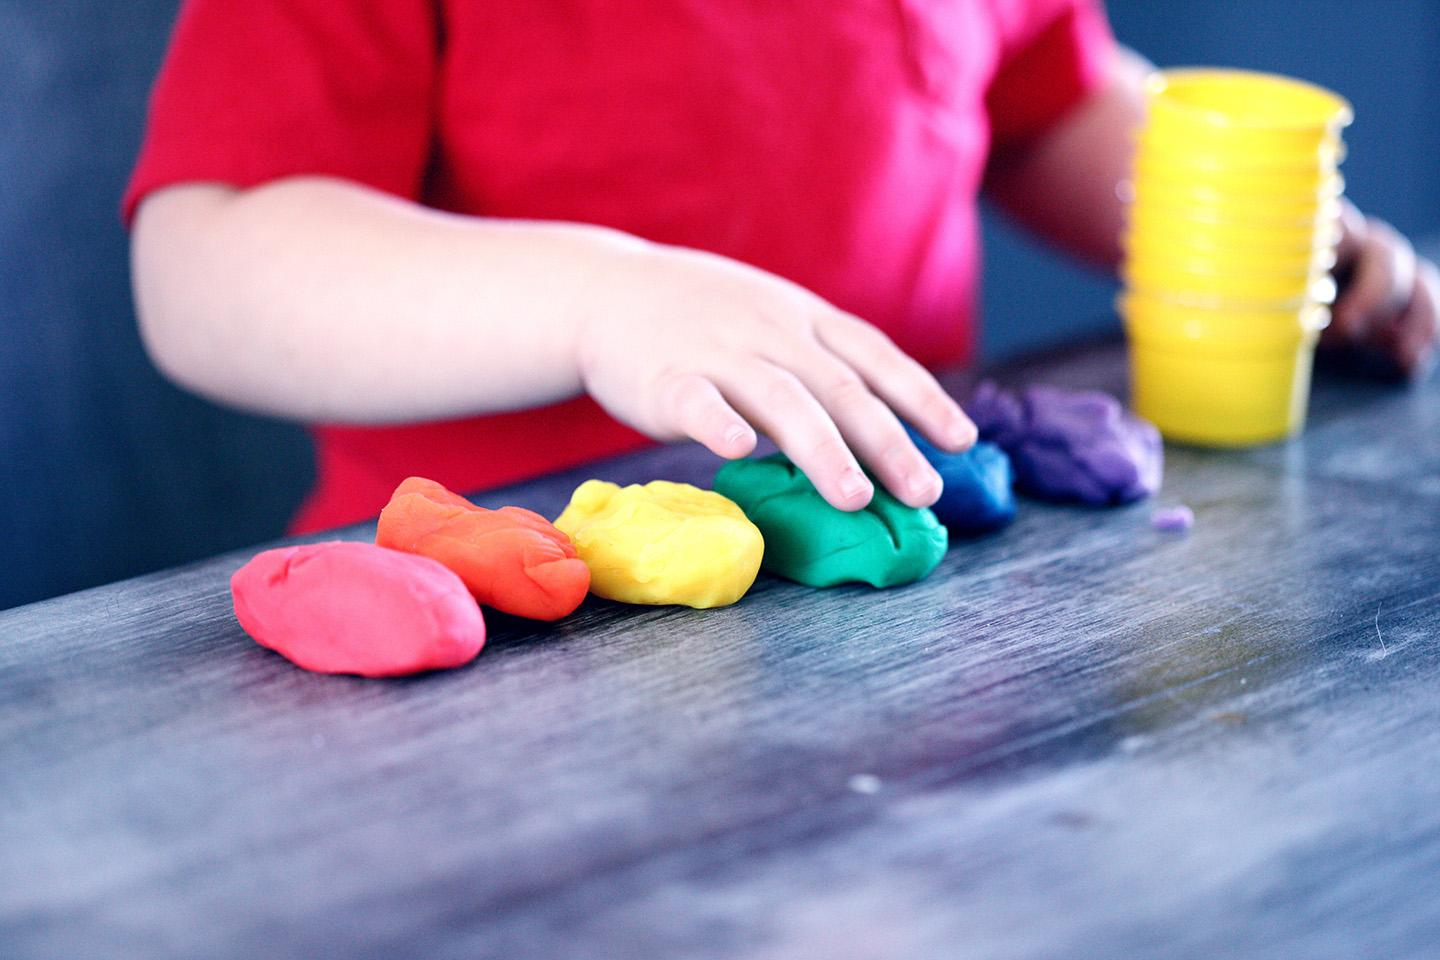 young child organizes balls of playdough by color